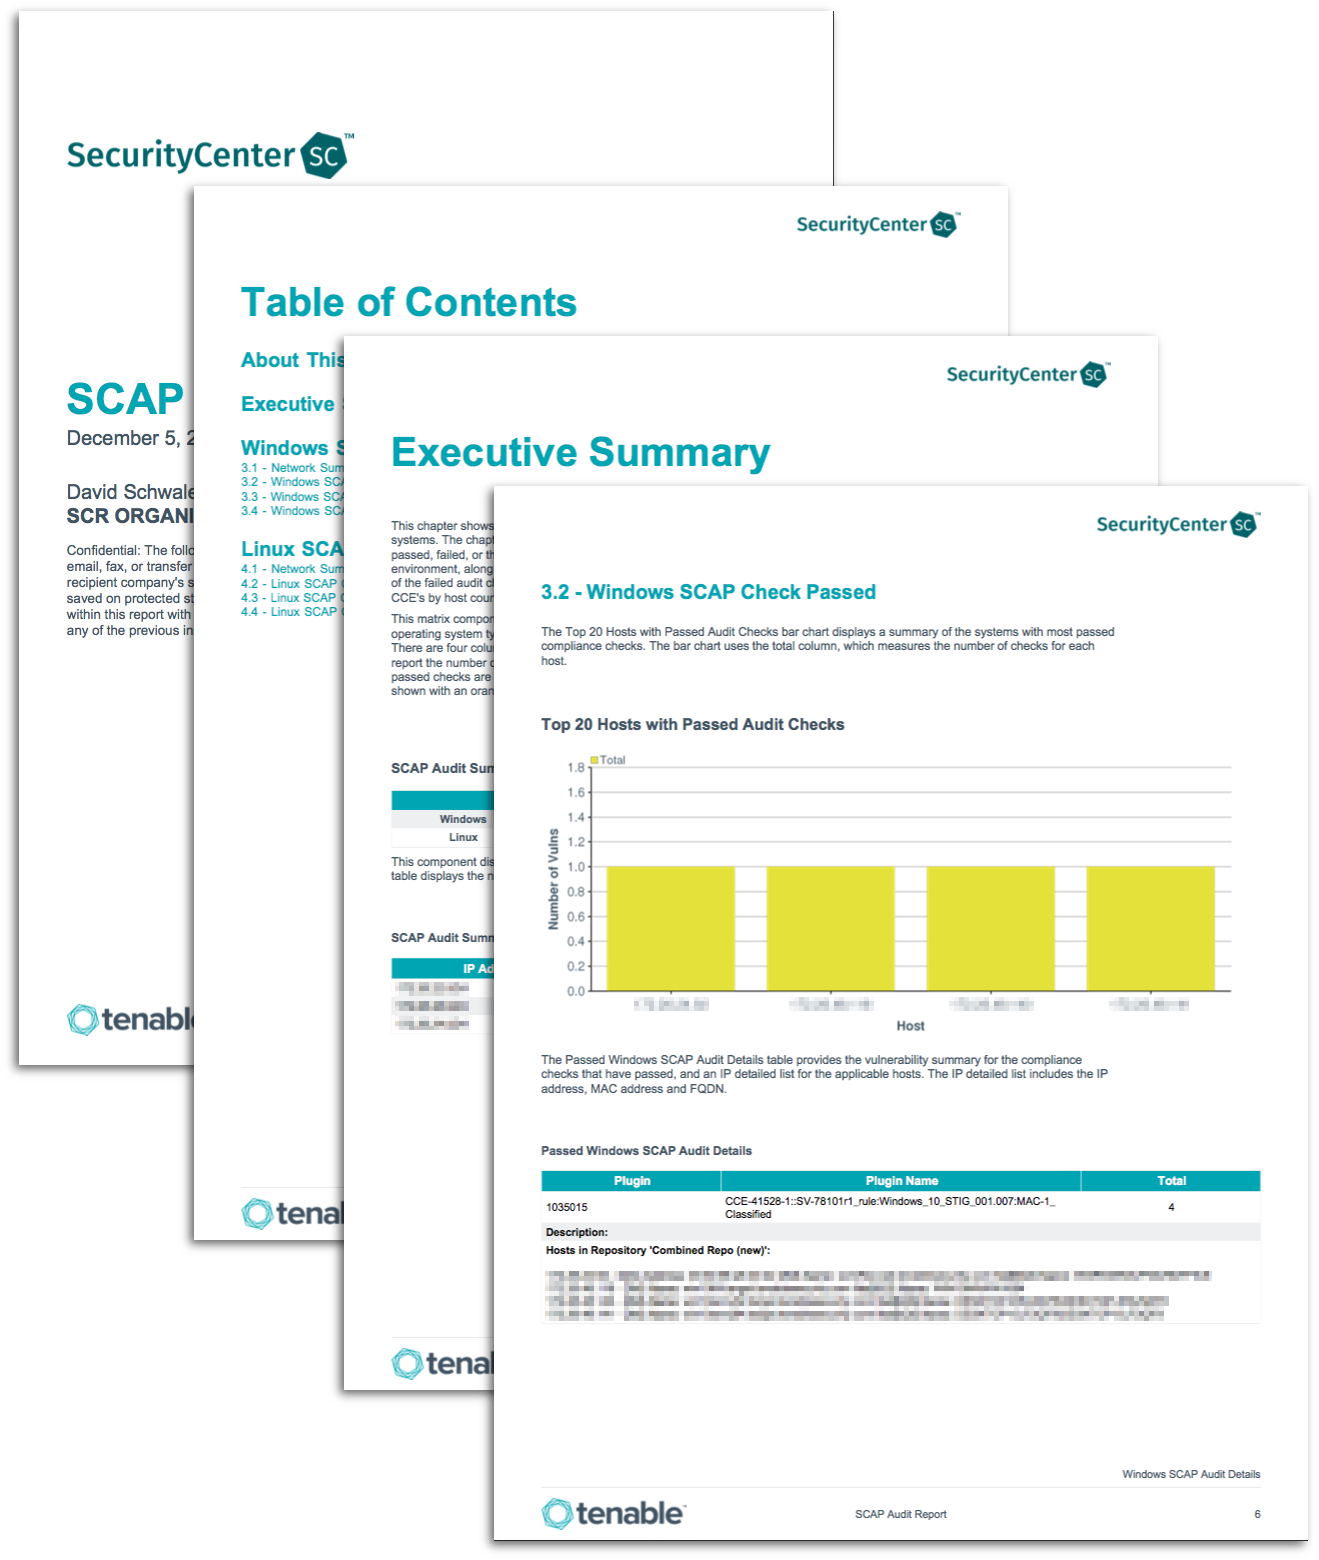 SCAP Audit Report